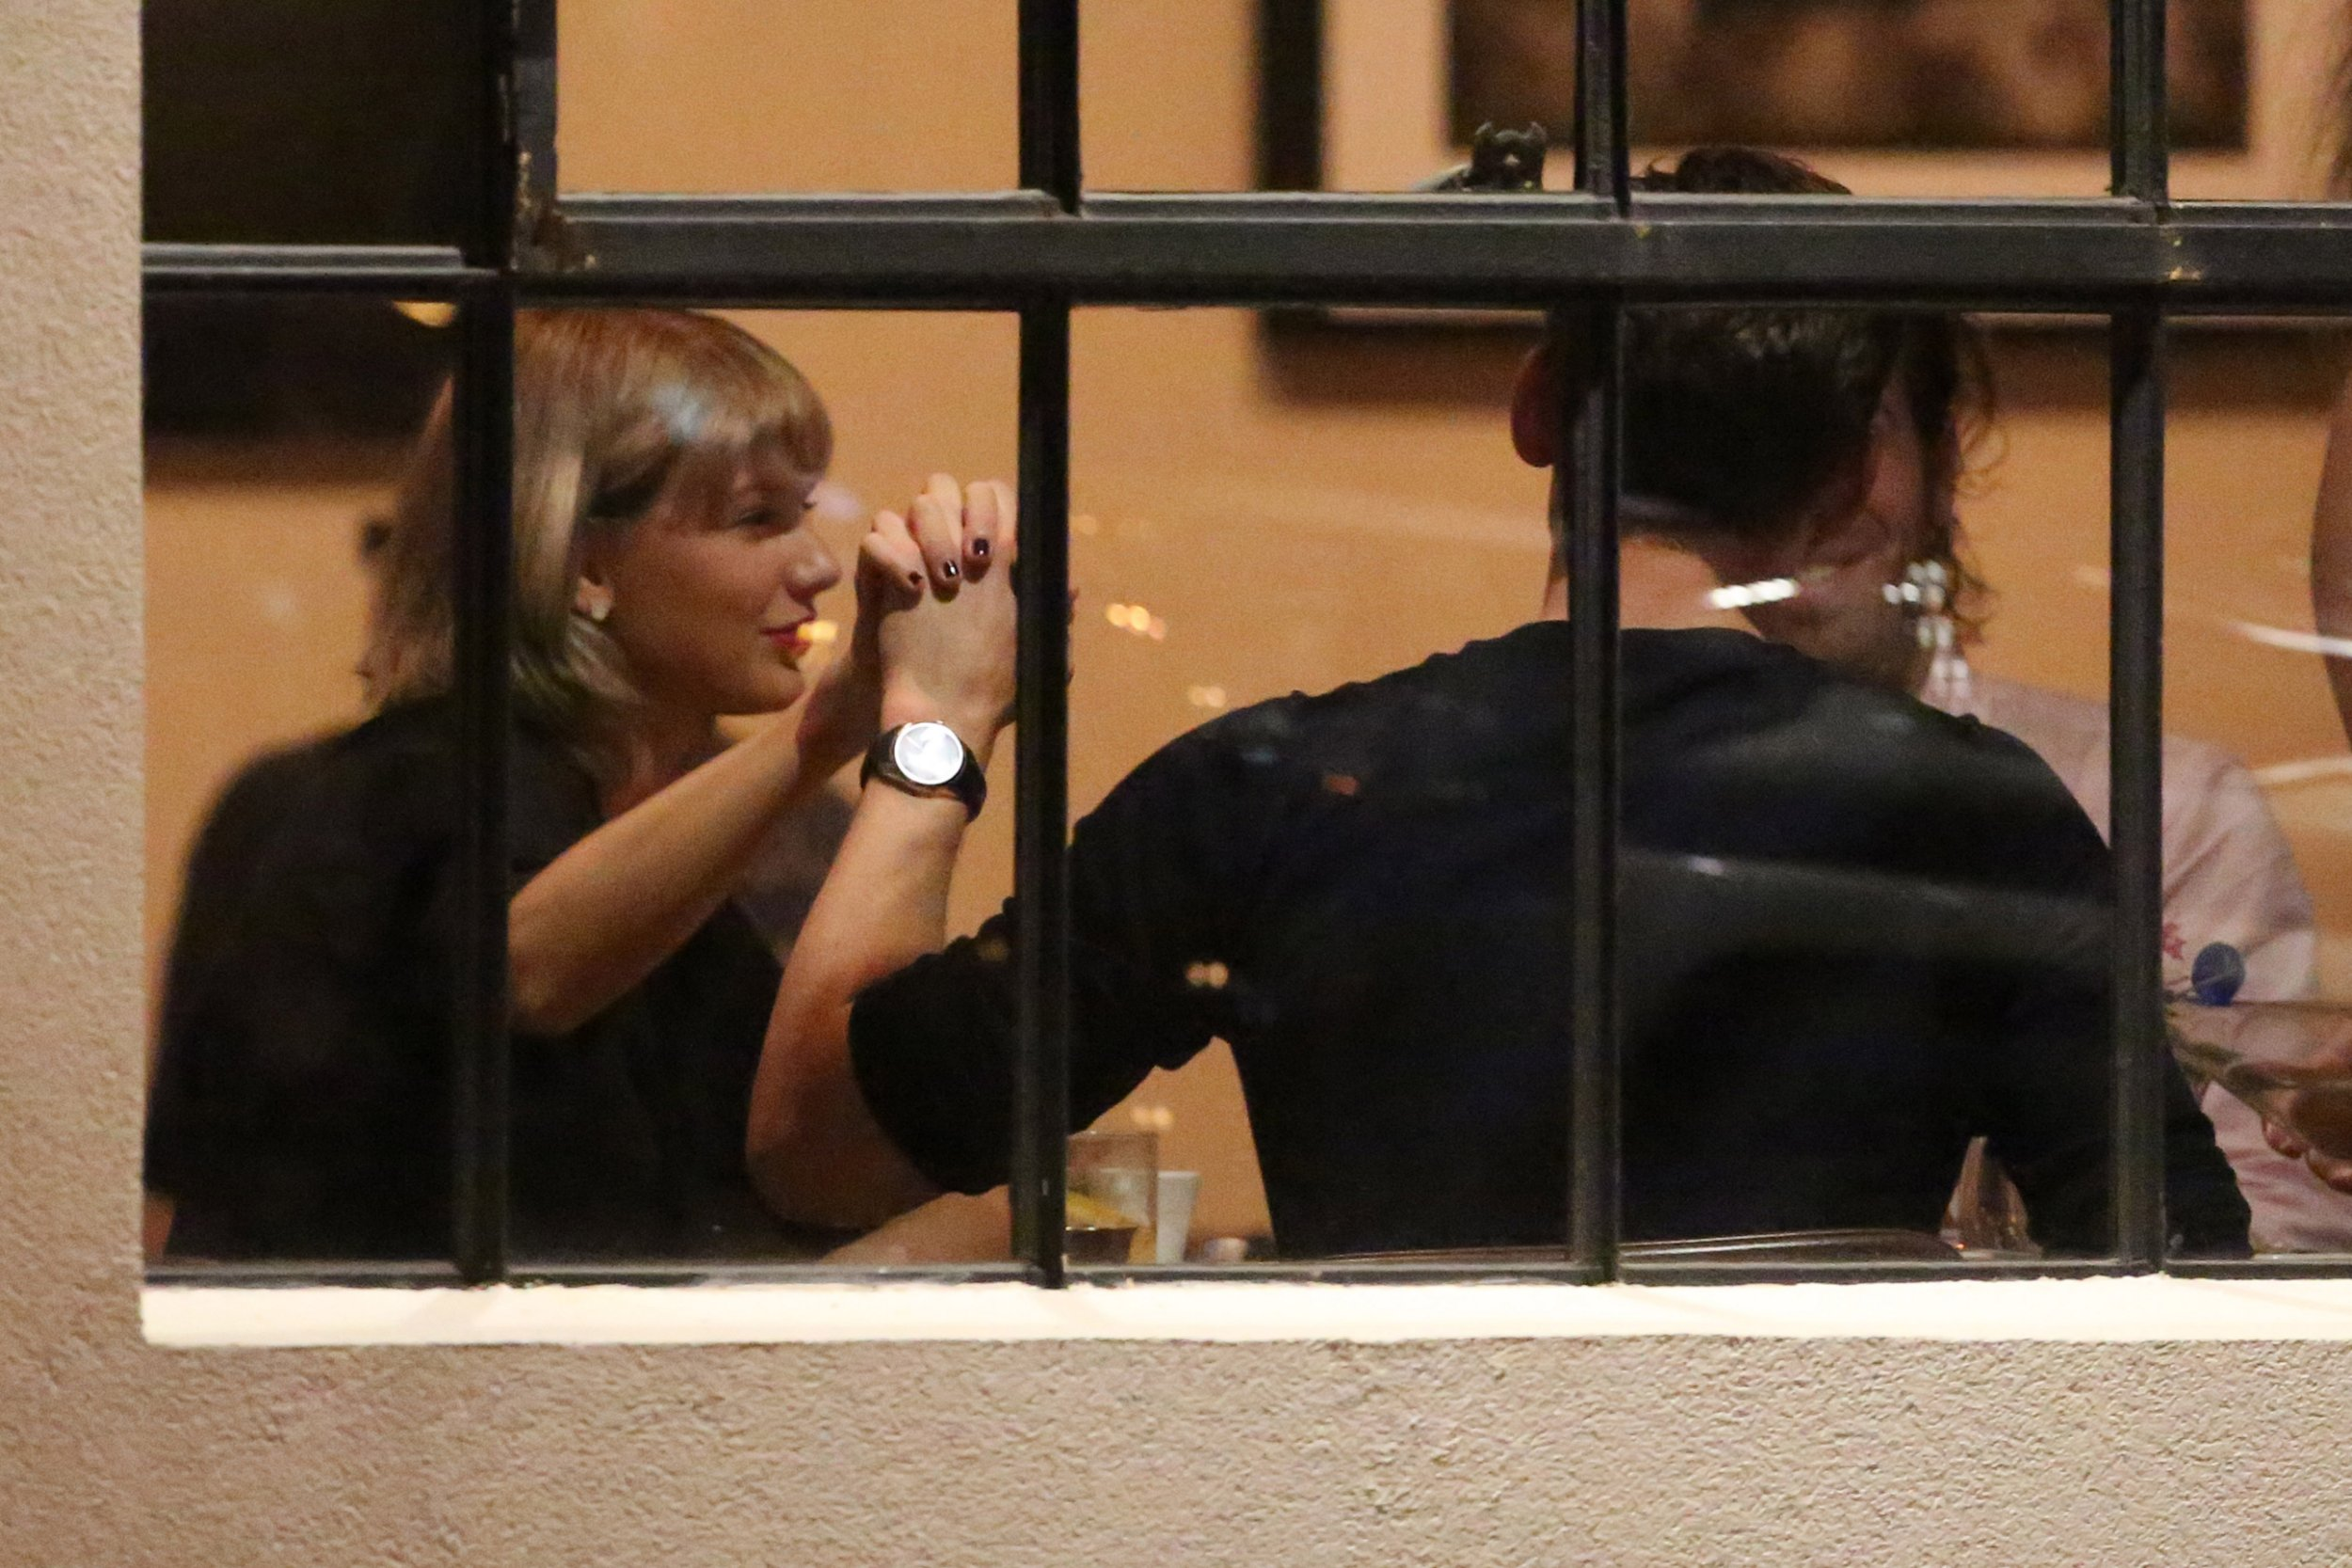 Taylor Swift and Tom Hiddleston hold hands and kiss during dinner date as 'she takes him to meet her parents'